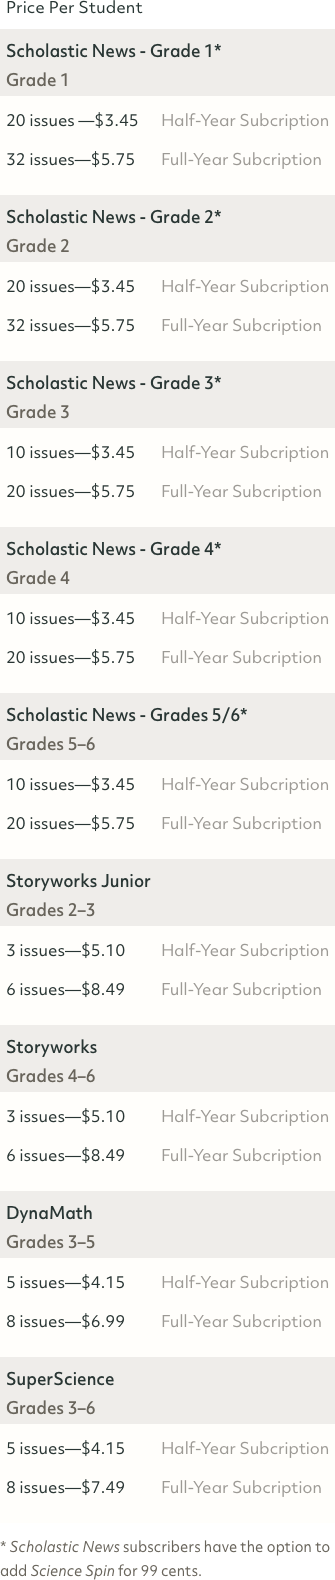 Scholastic Magazine 6 and 12 month subscription prices.